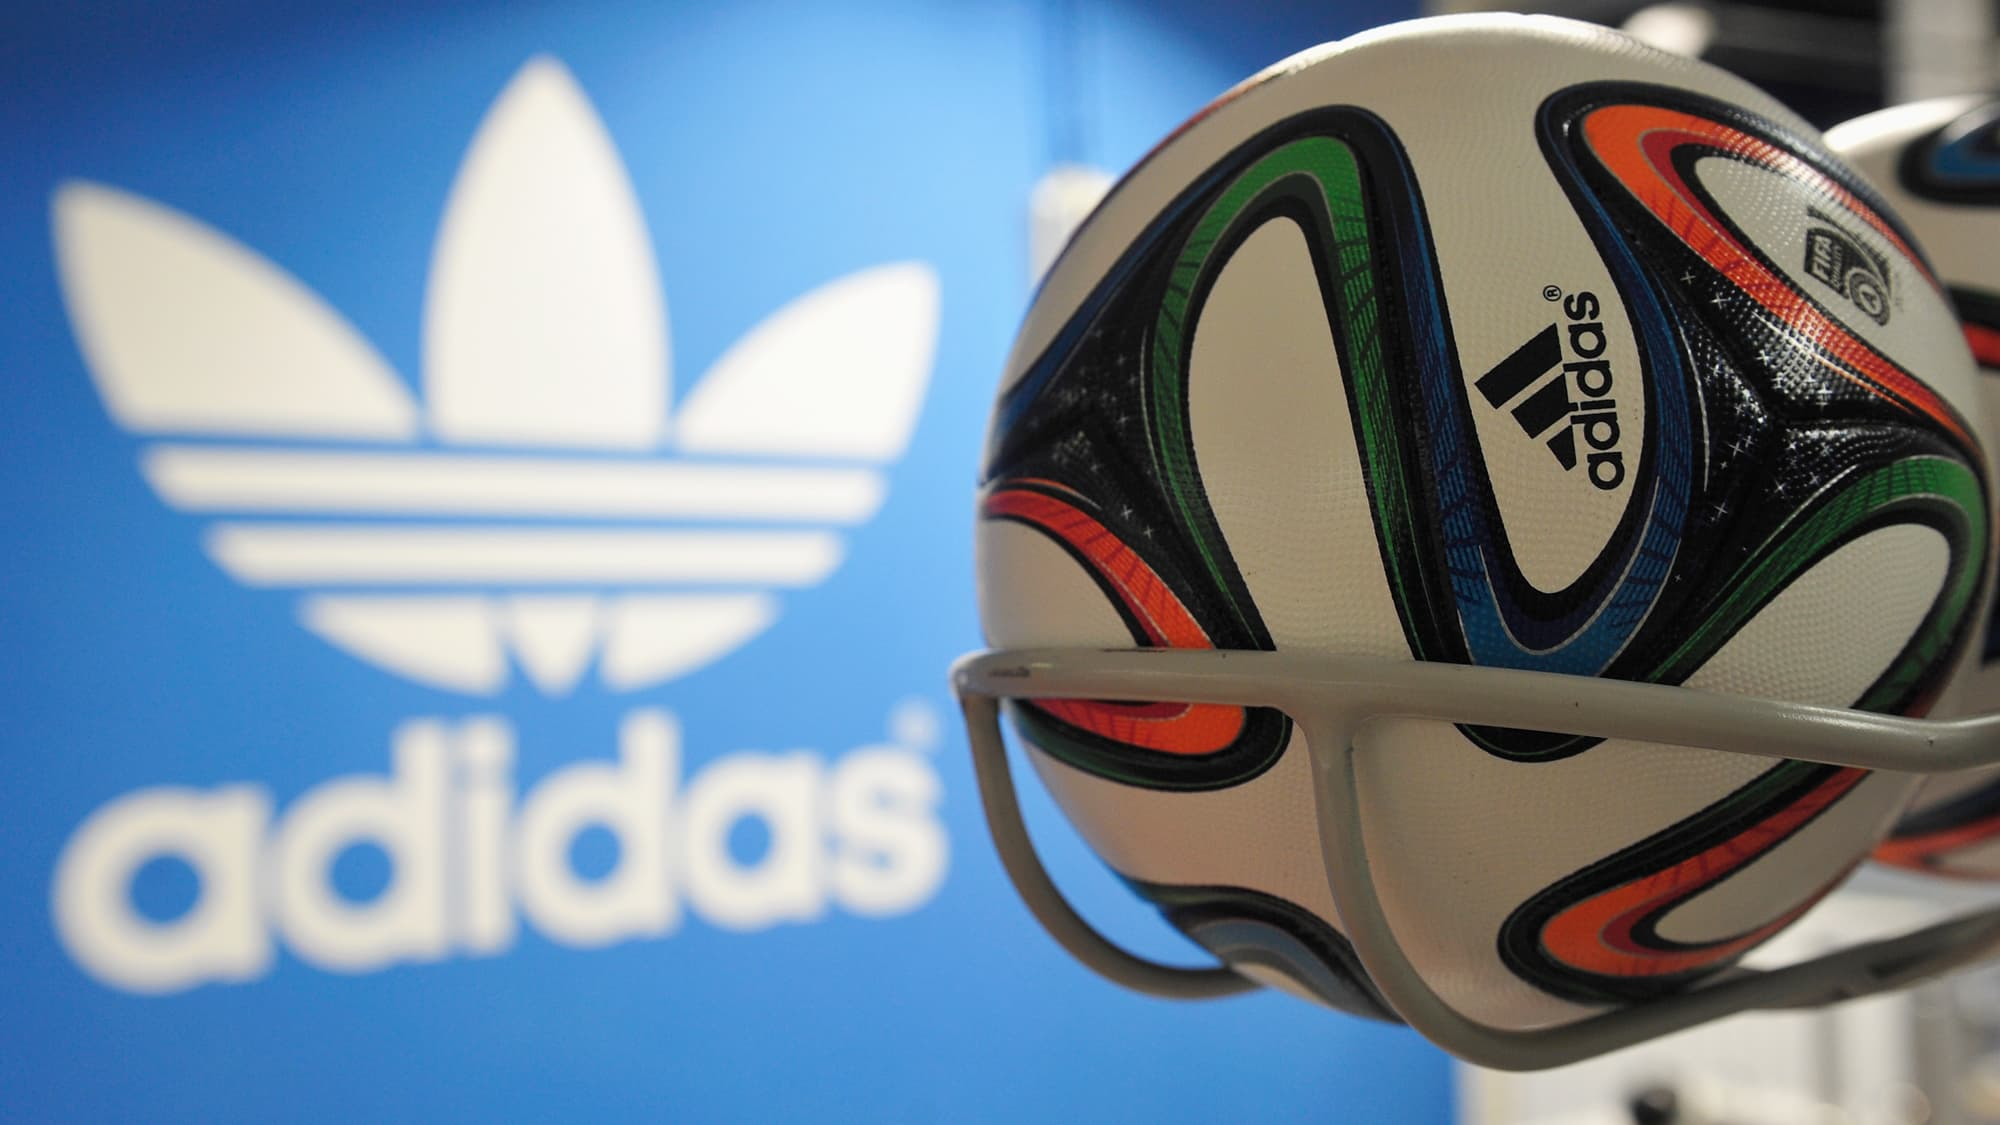 newest c6b01 bd890 Adidas shares plunge 13% after Russia warning